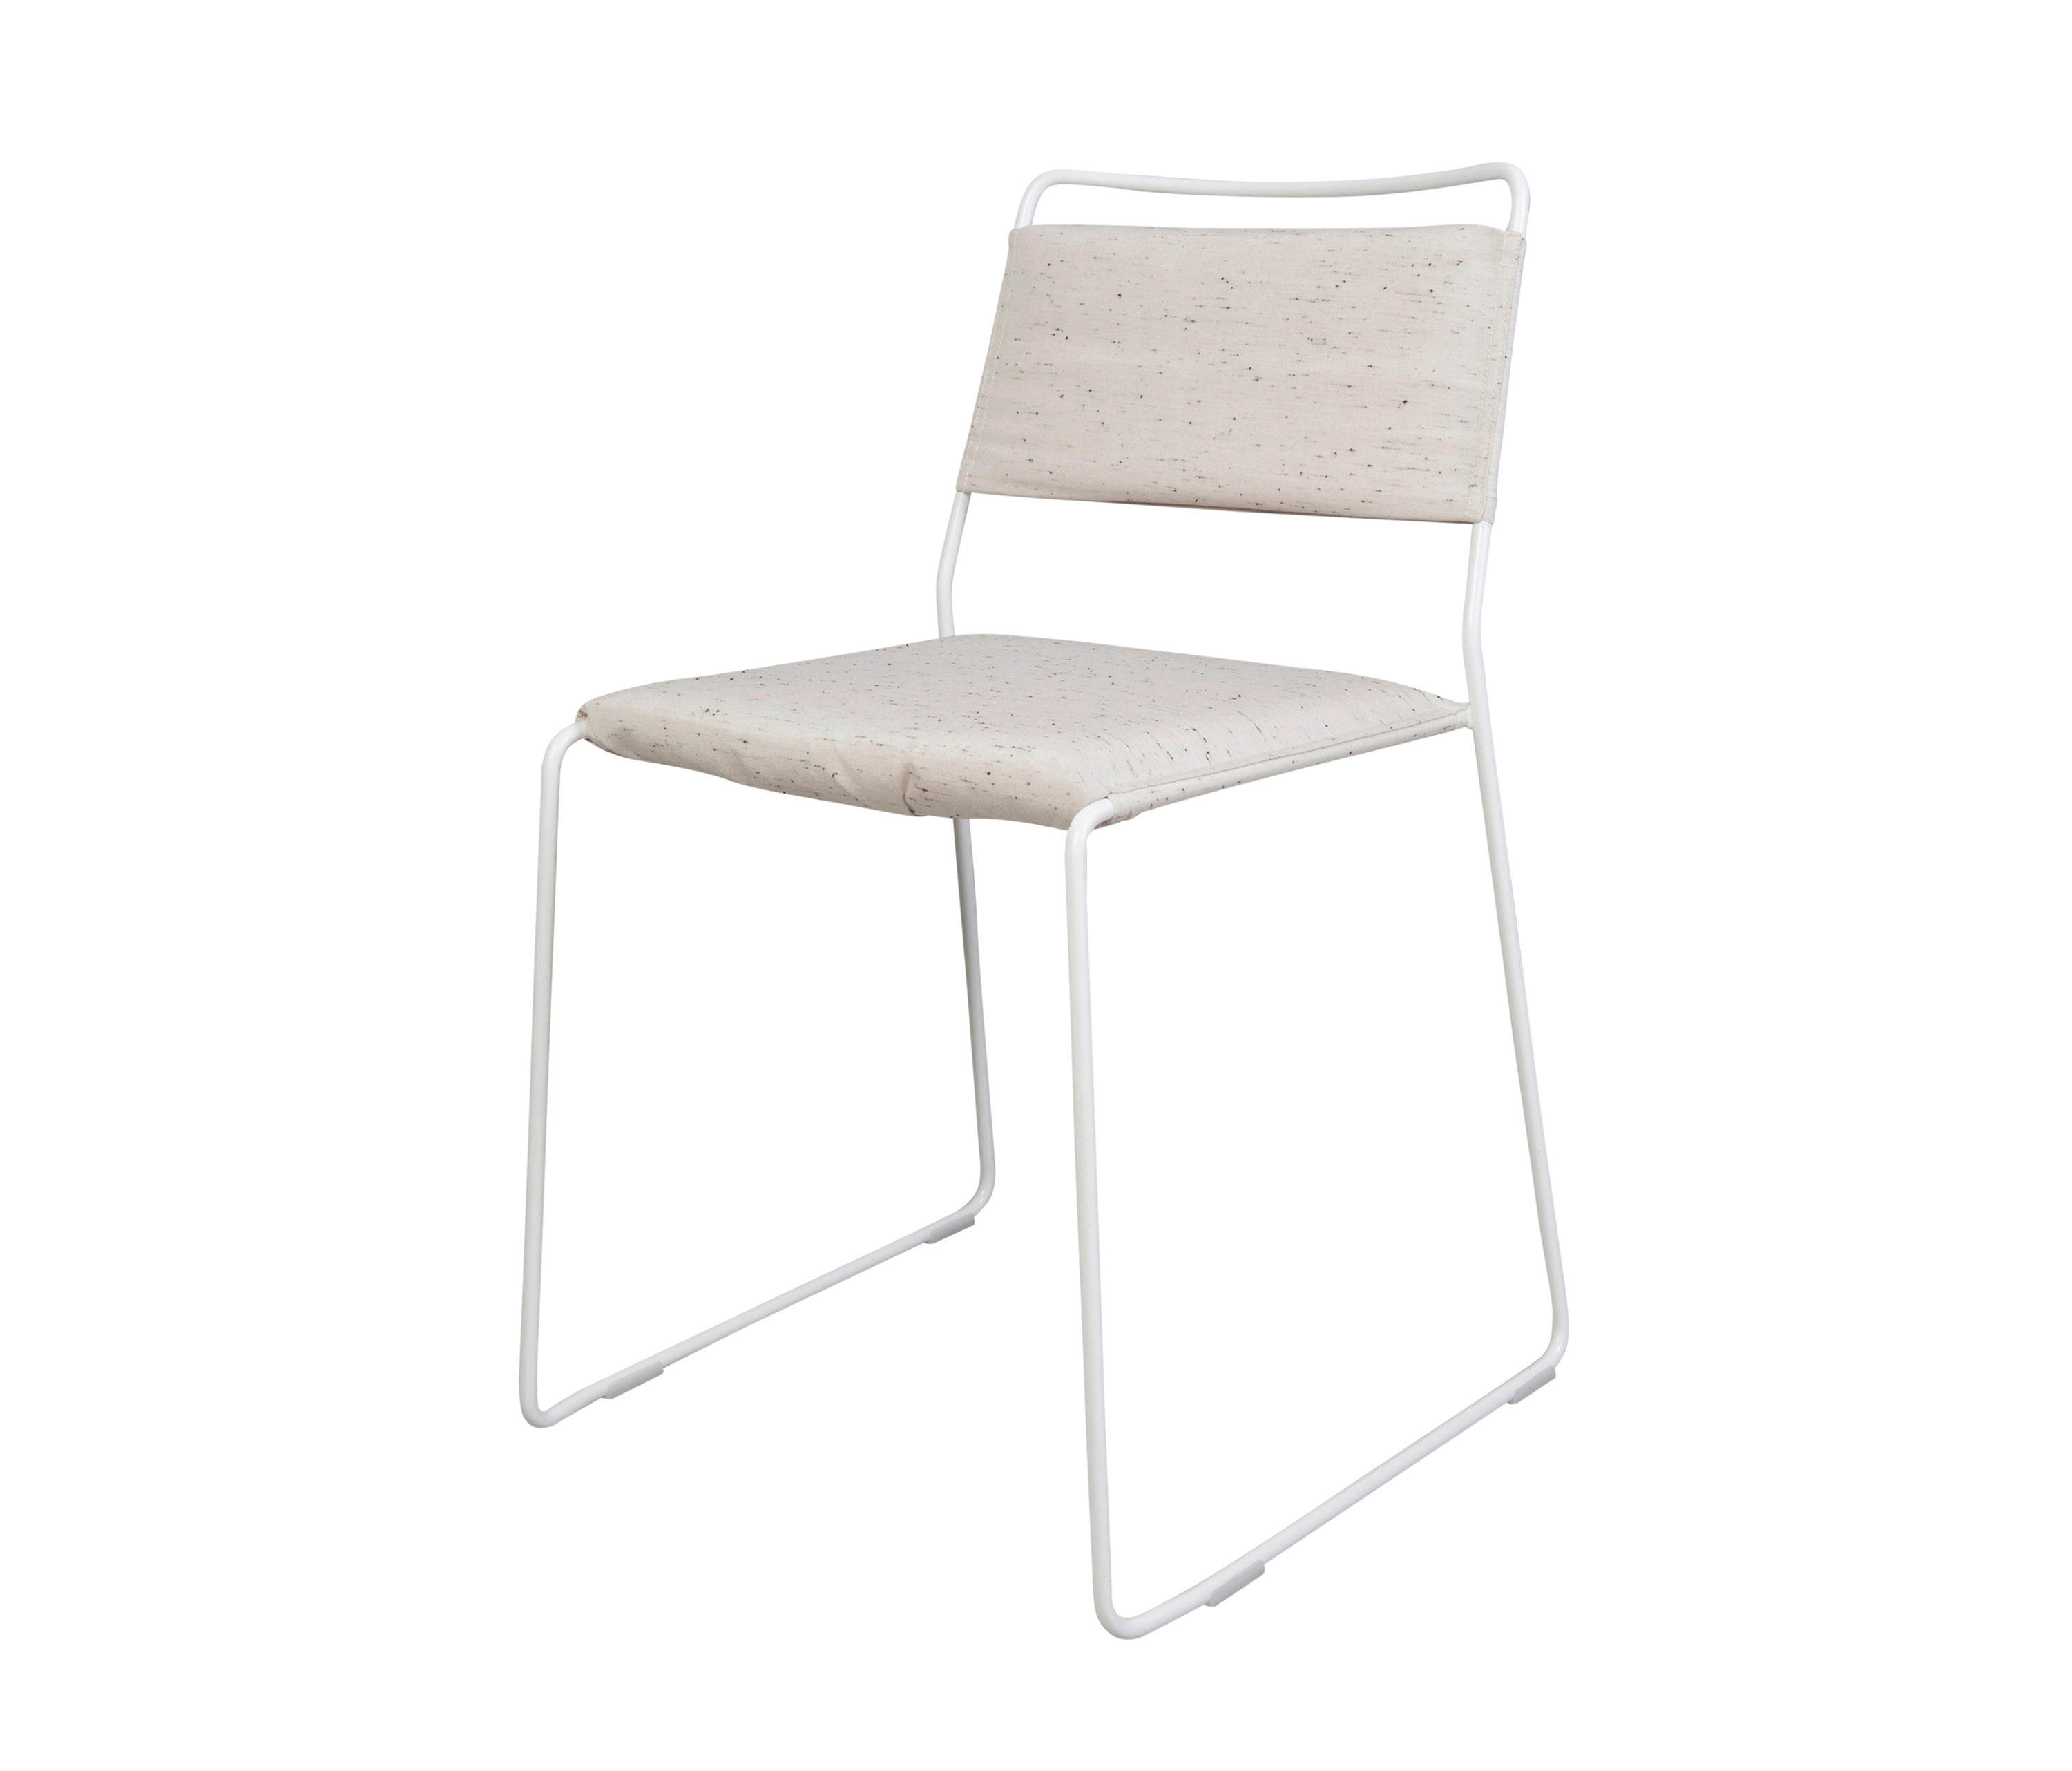 ONE WIRE CHAIR Chairs from OK design